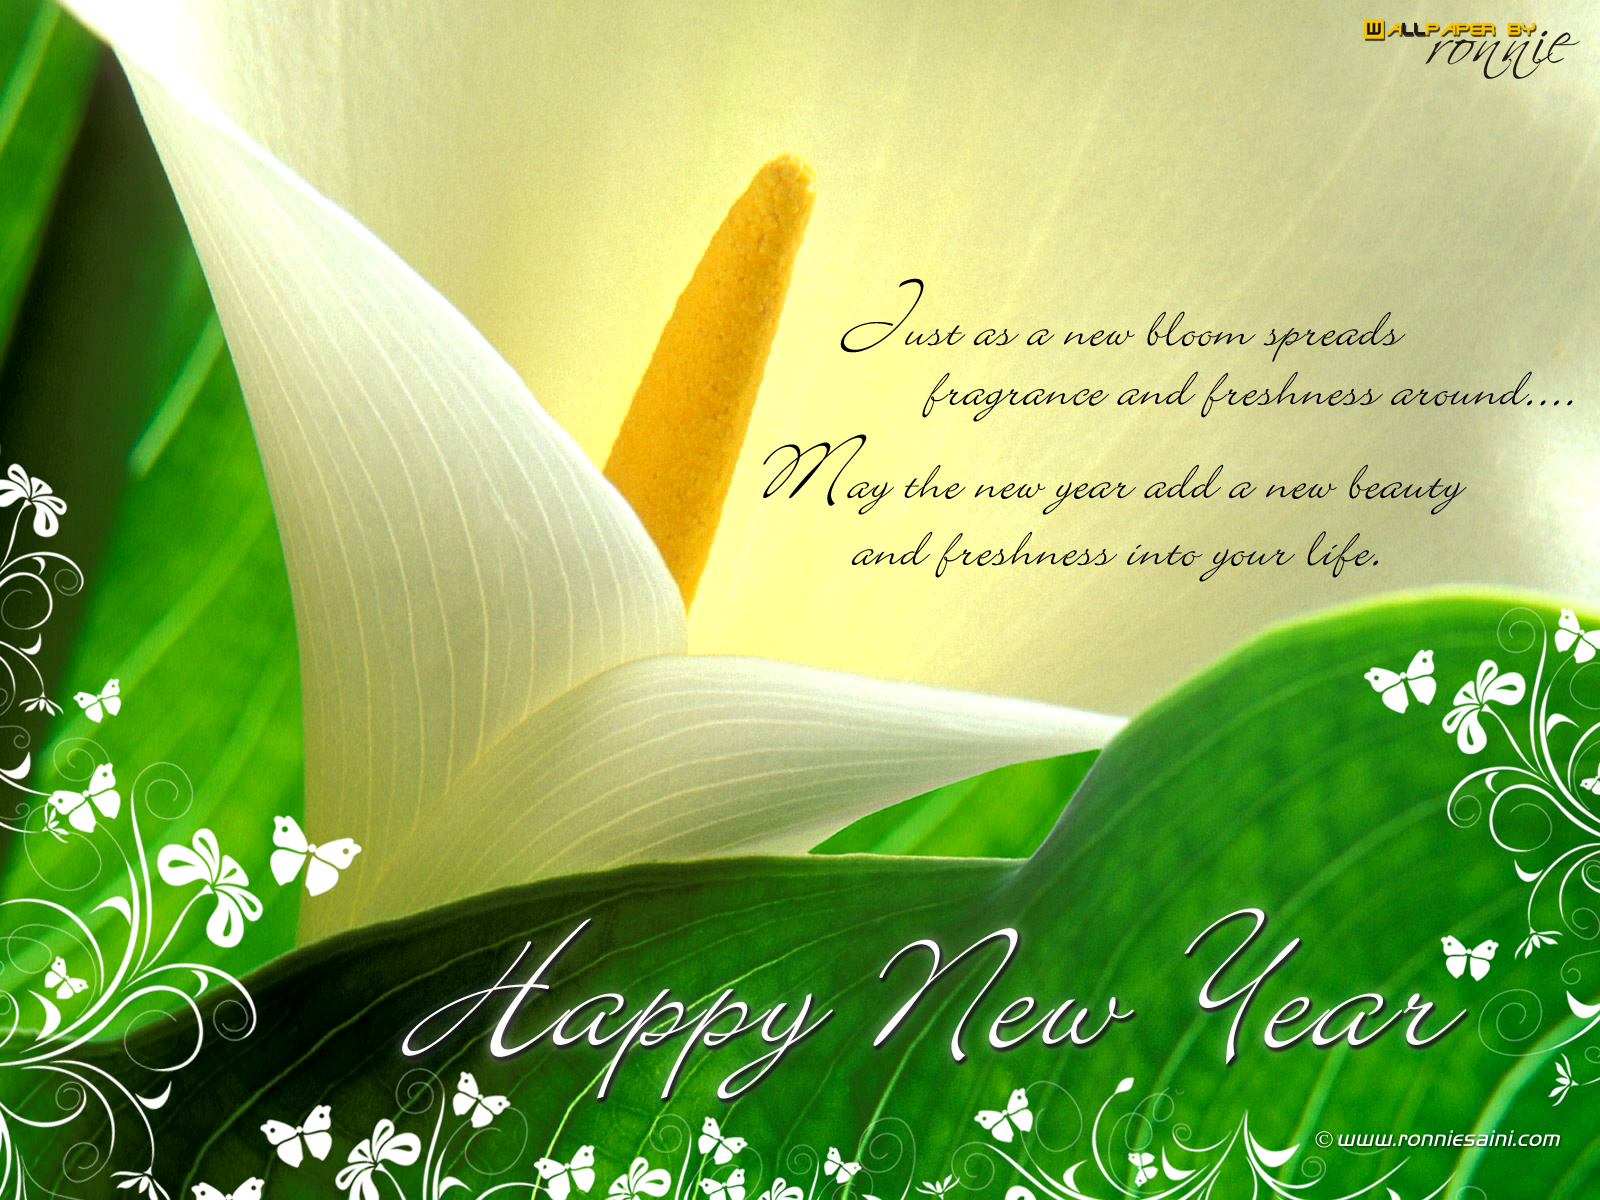 Wallpaper download pagalworld - Happy New Year 1600x1200